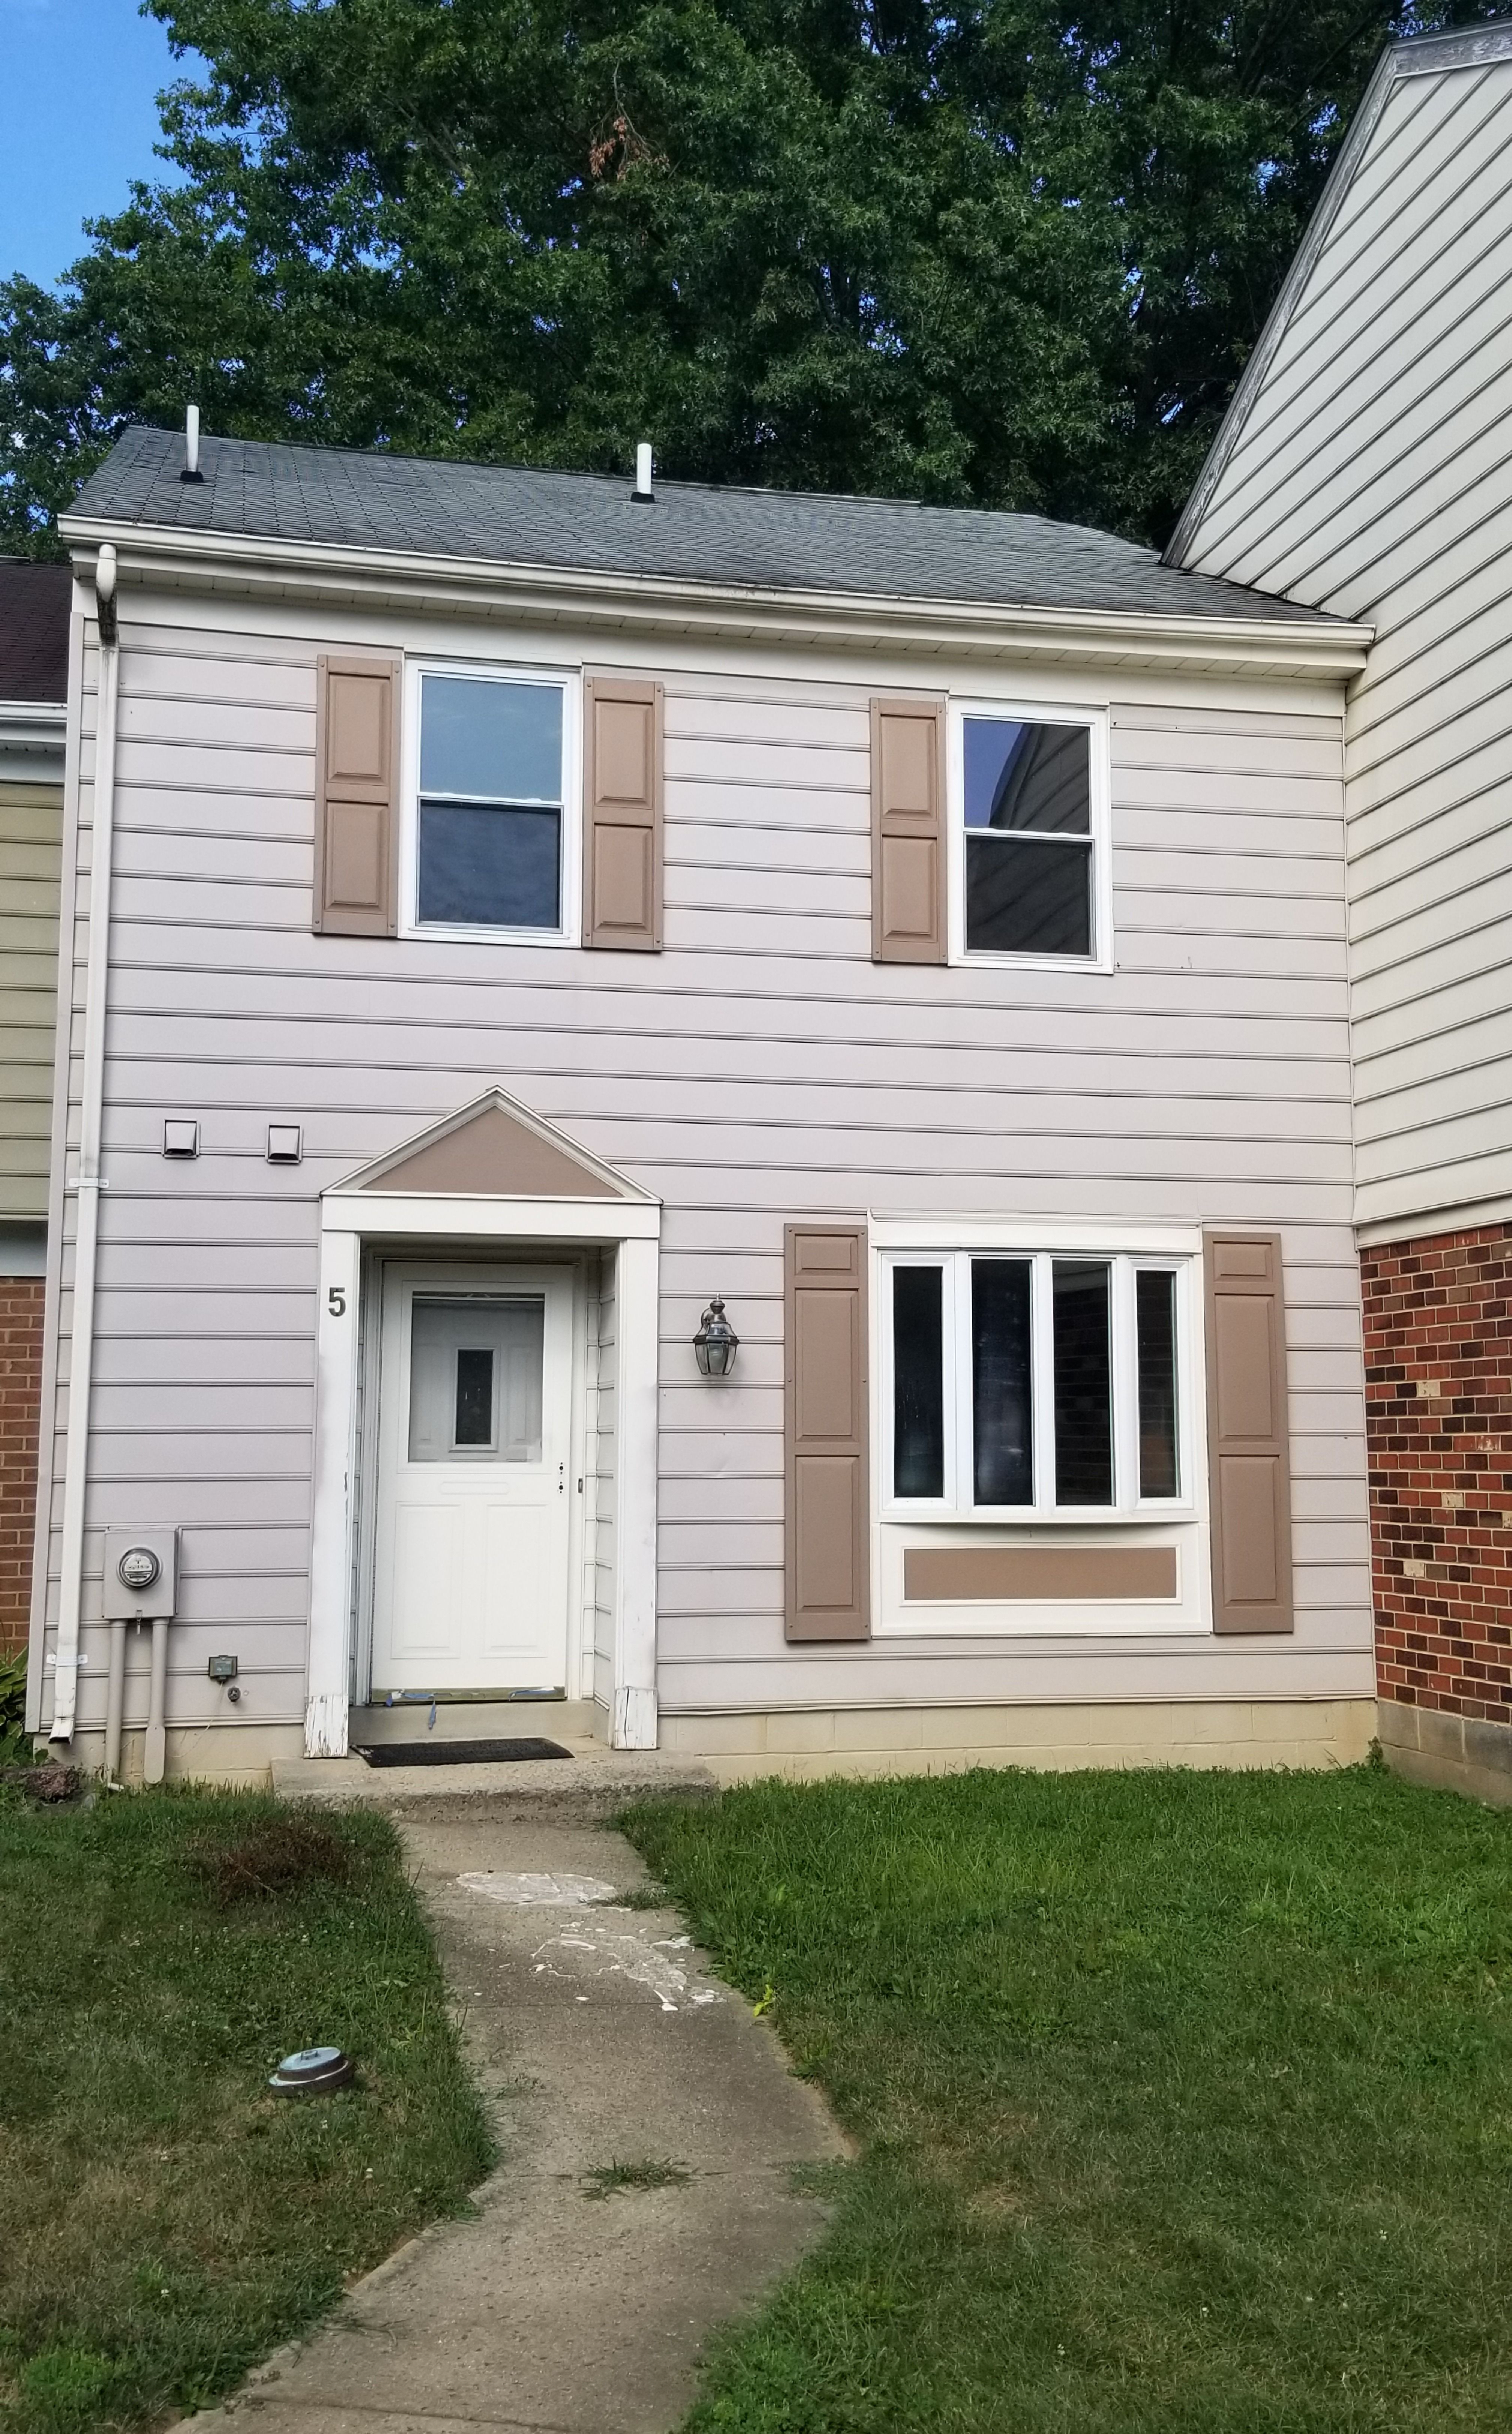 3 bed 25 bath townhome updated half bath on main level